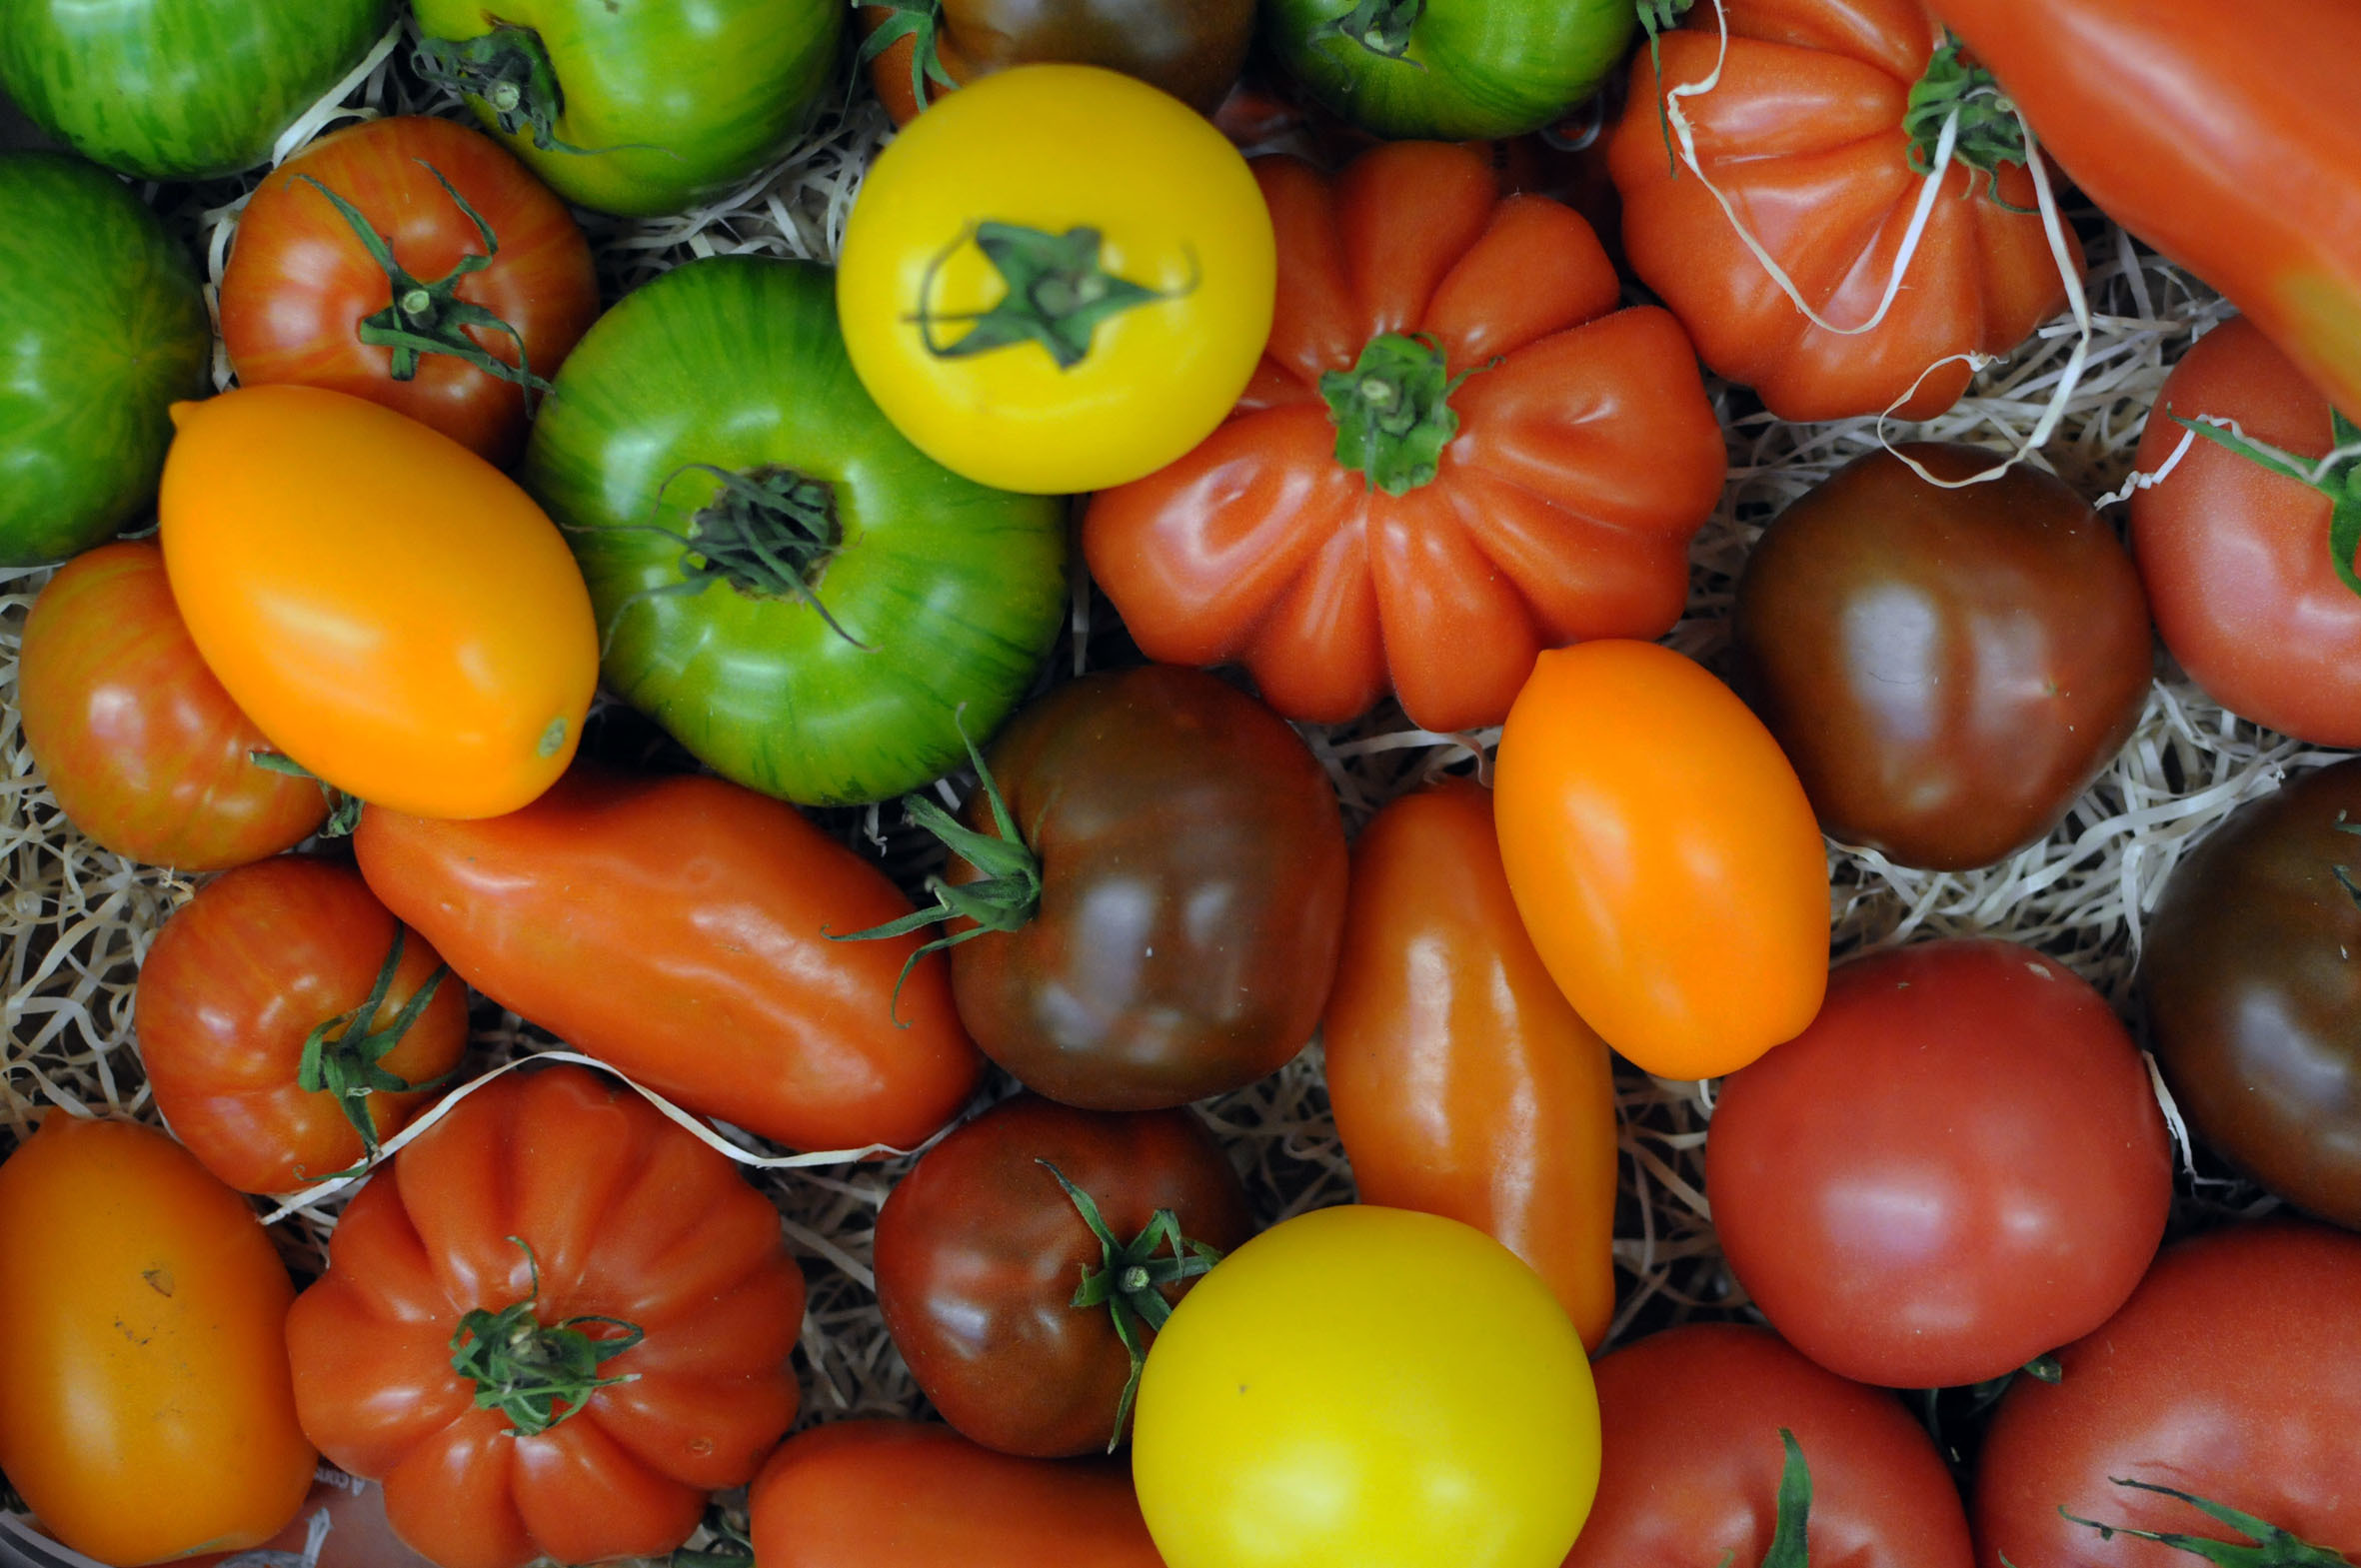 tomatoes_170922_135452.jpg?mtime=20170922135452#asset:11468